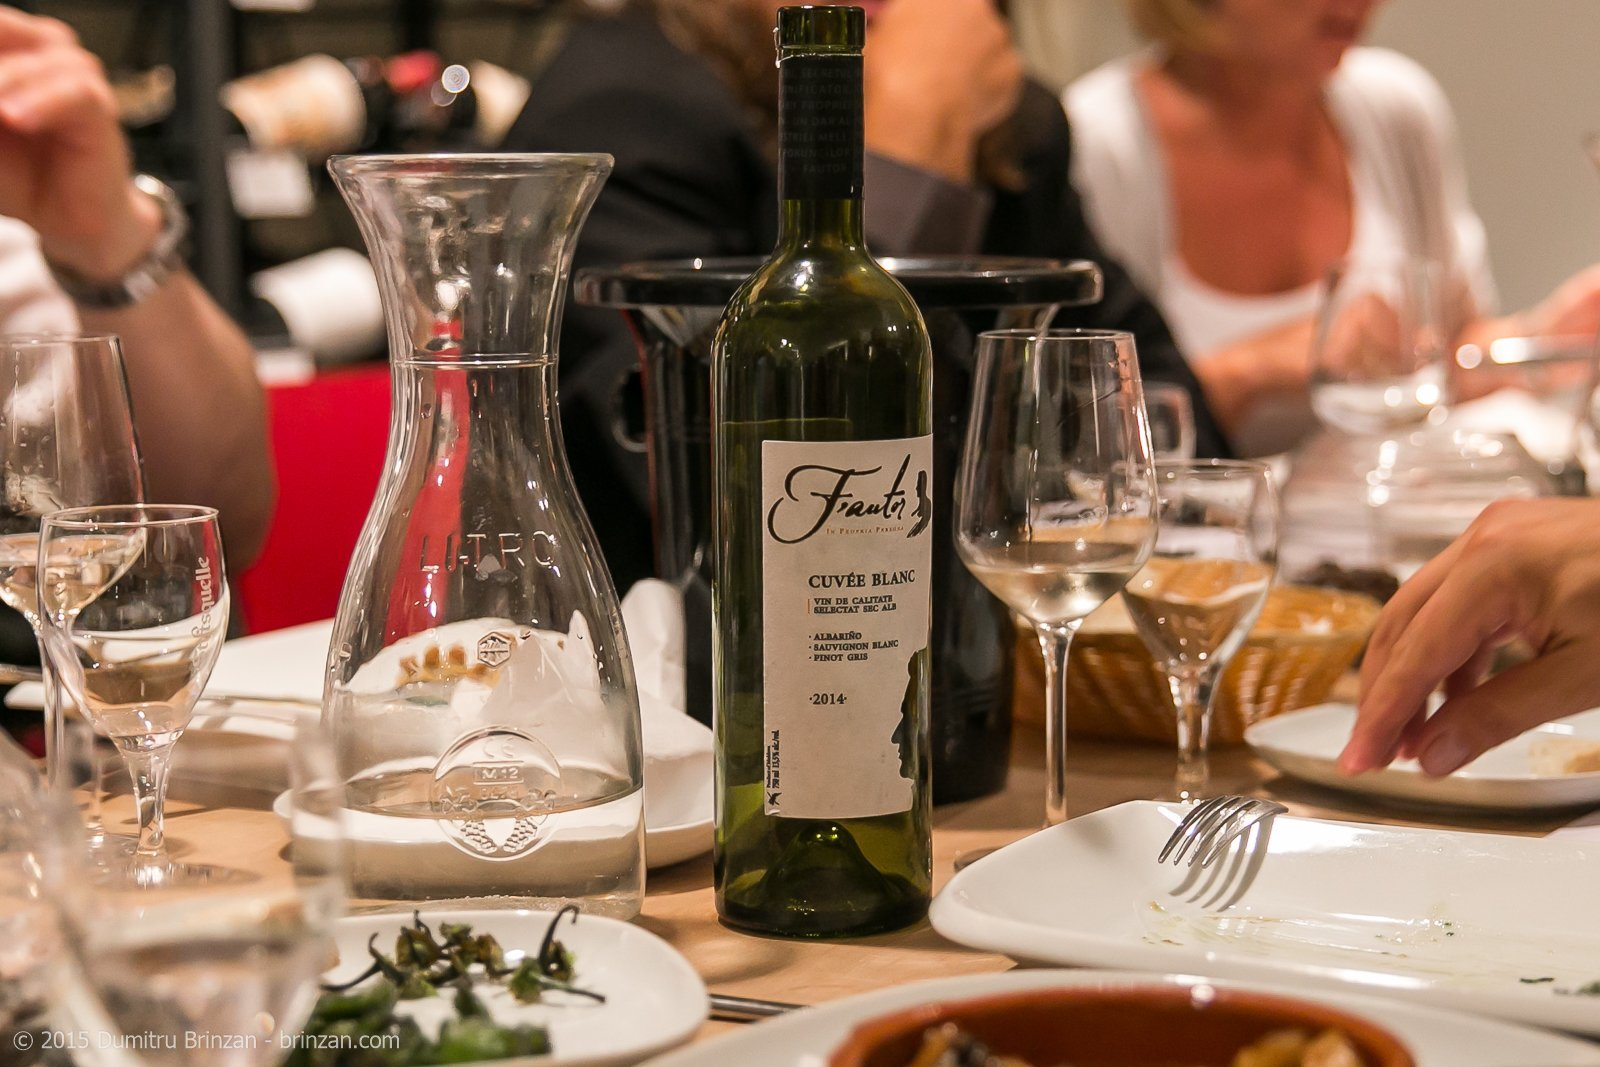 A bottle of F'autor Cuvee Blanc 2014 on a Table